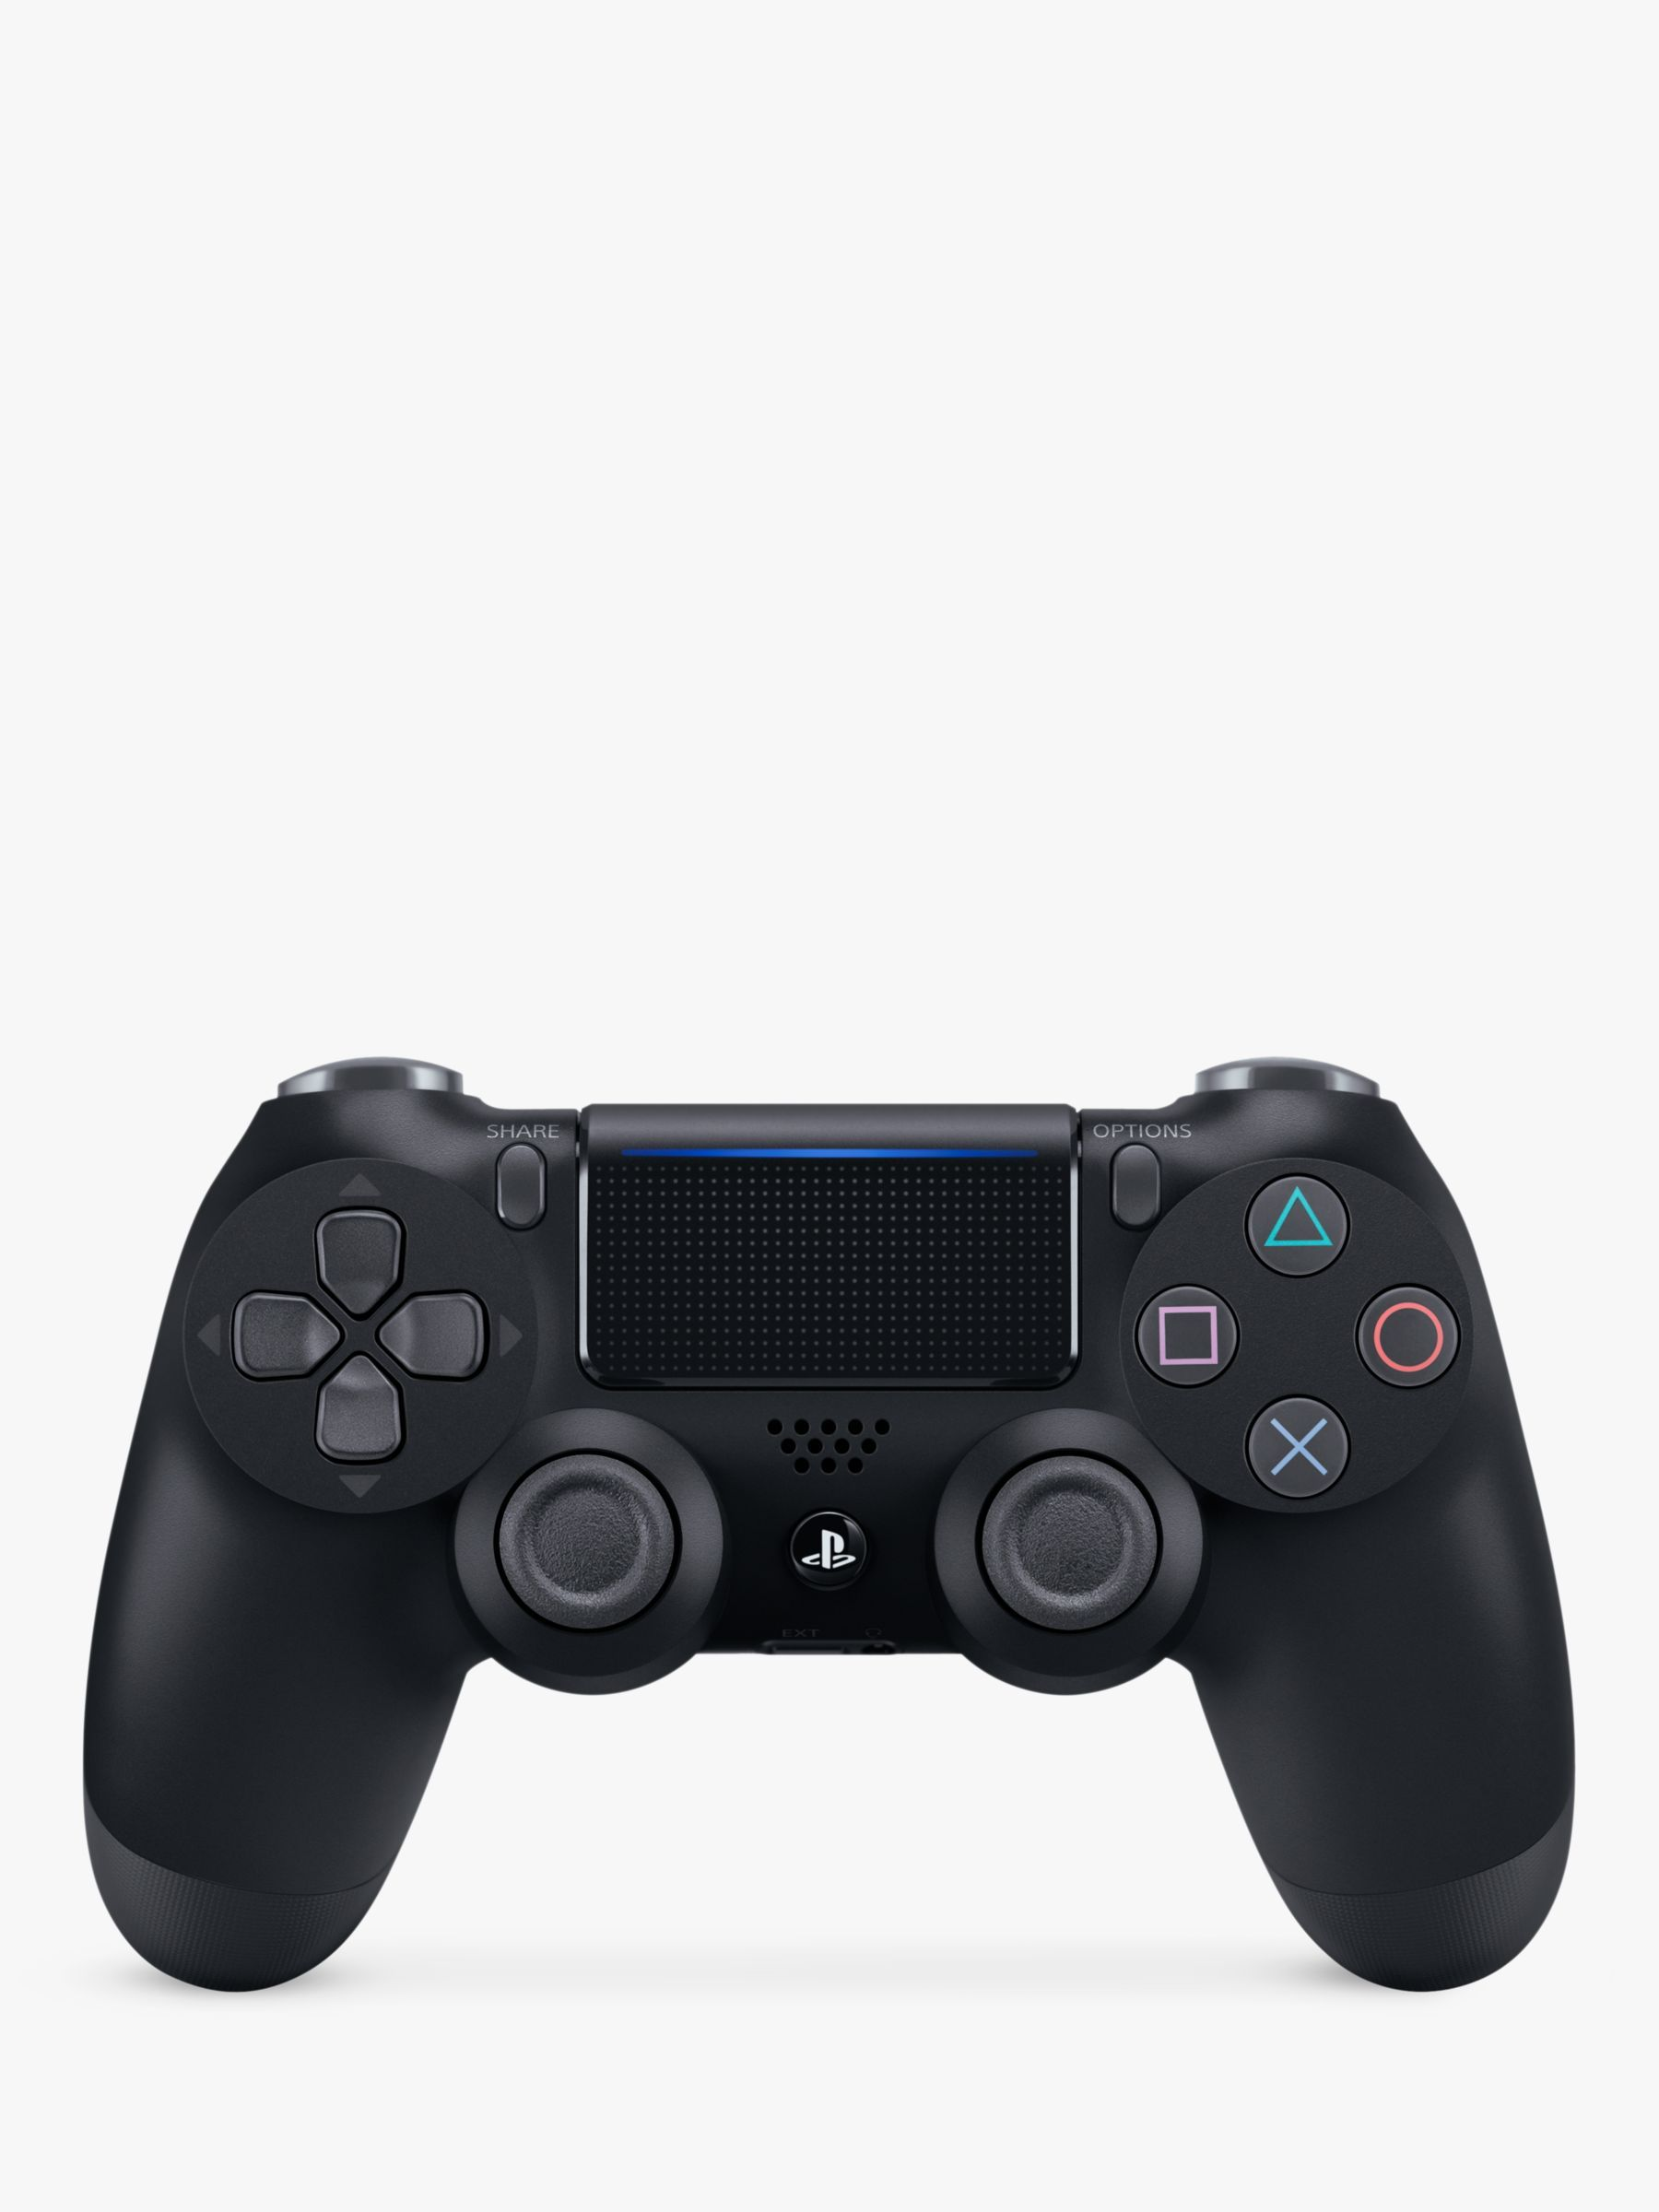 Sony Playstation 4 Slim Console With Dualshock 4 Controller 500gb Jet Black And Fifa 19 Bundle Console Playstation Sony